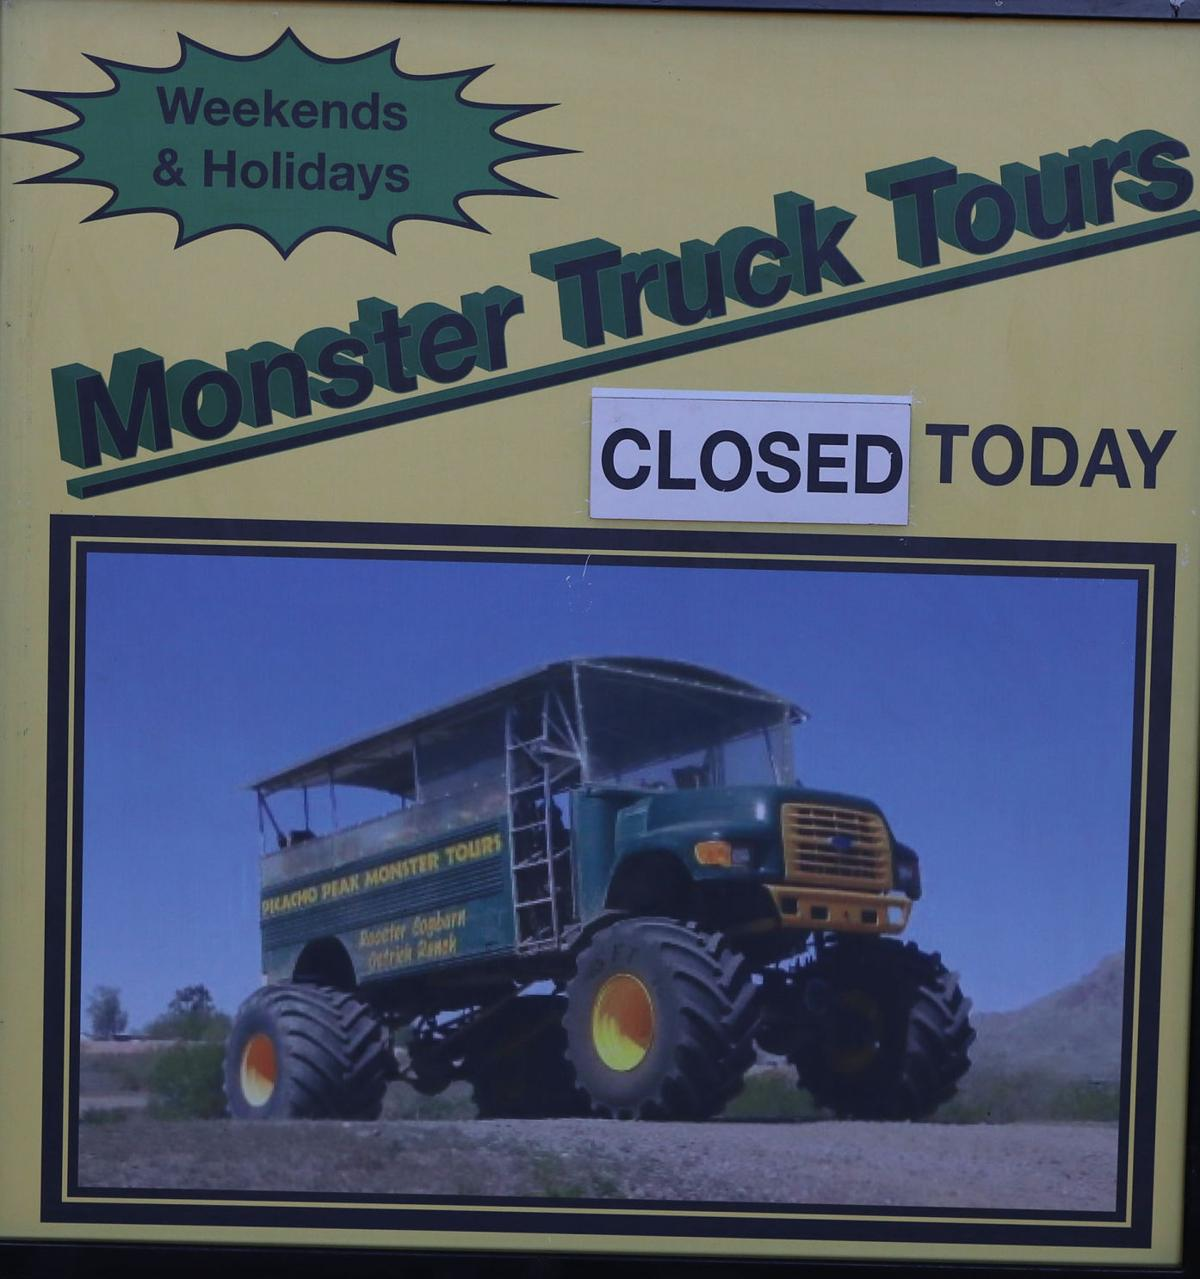 Pinal Ostrich Farm Discontinues Monster Truck Tours After